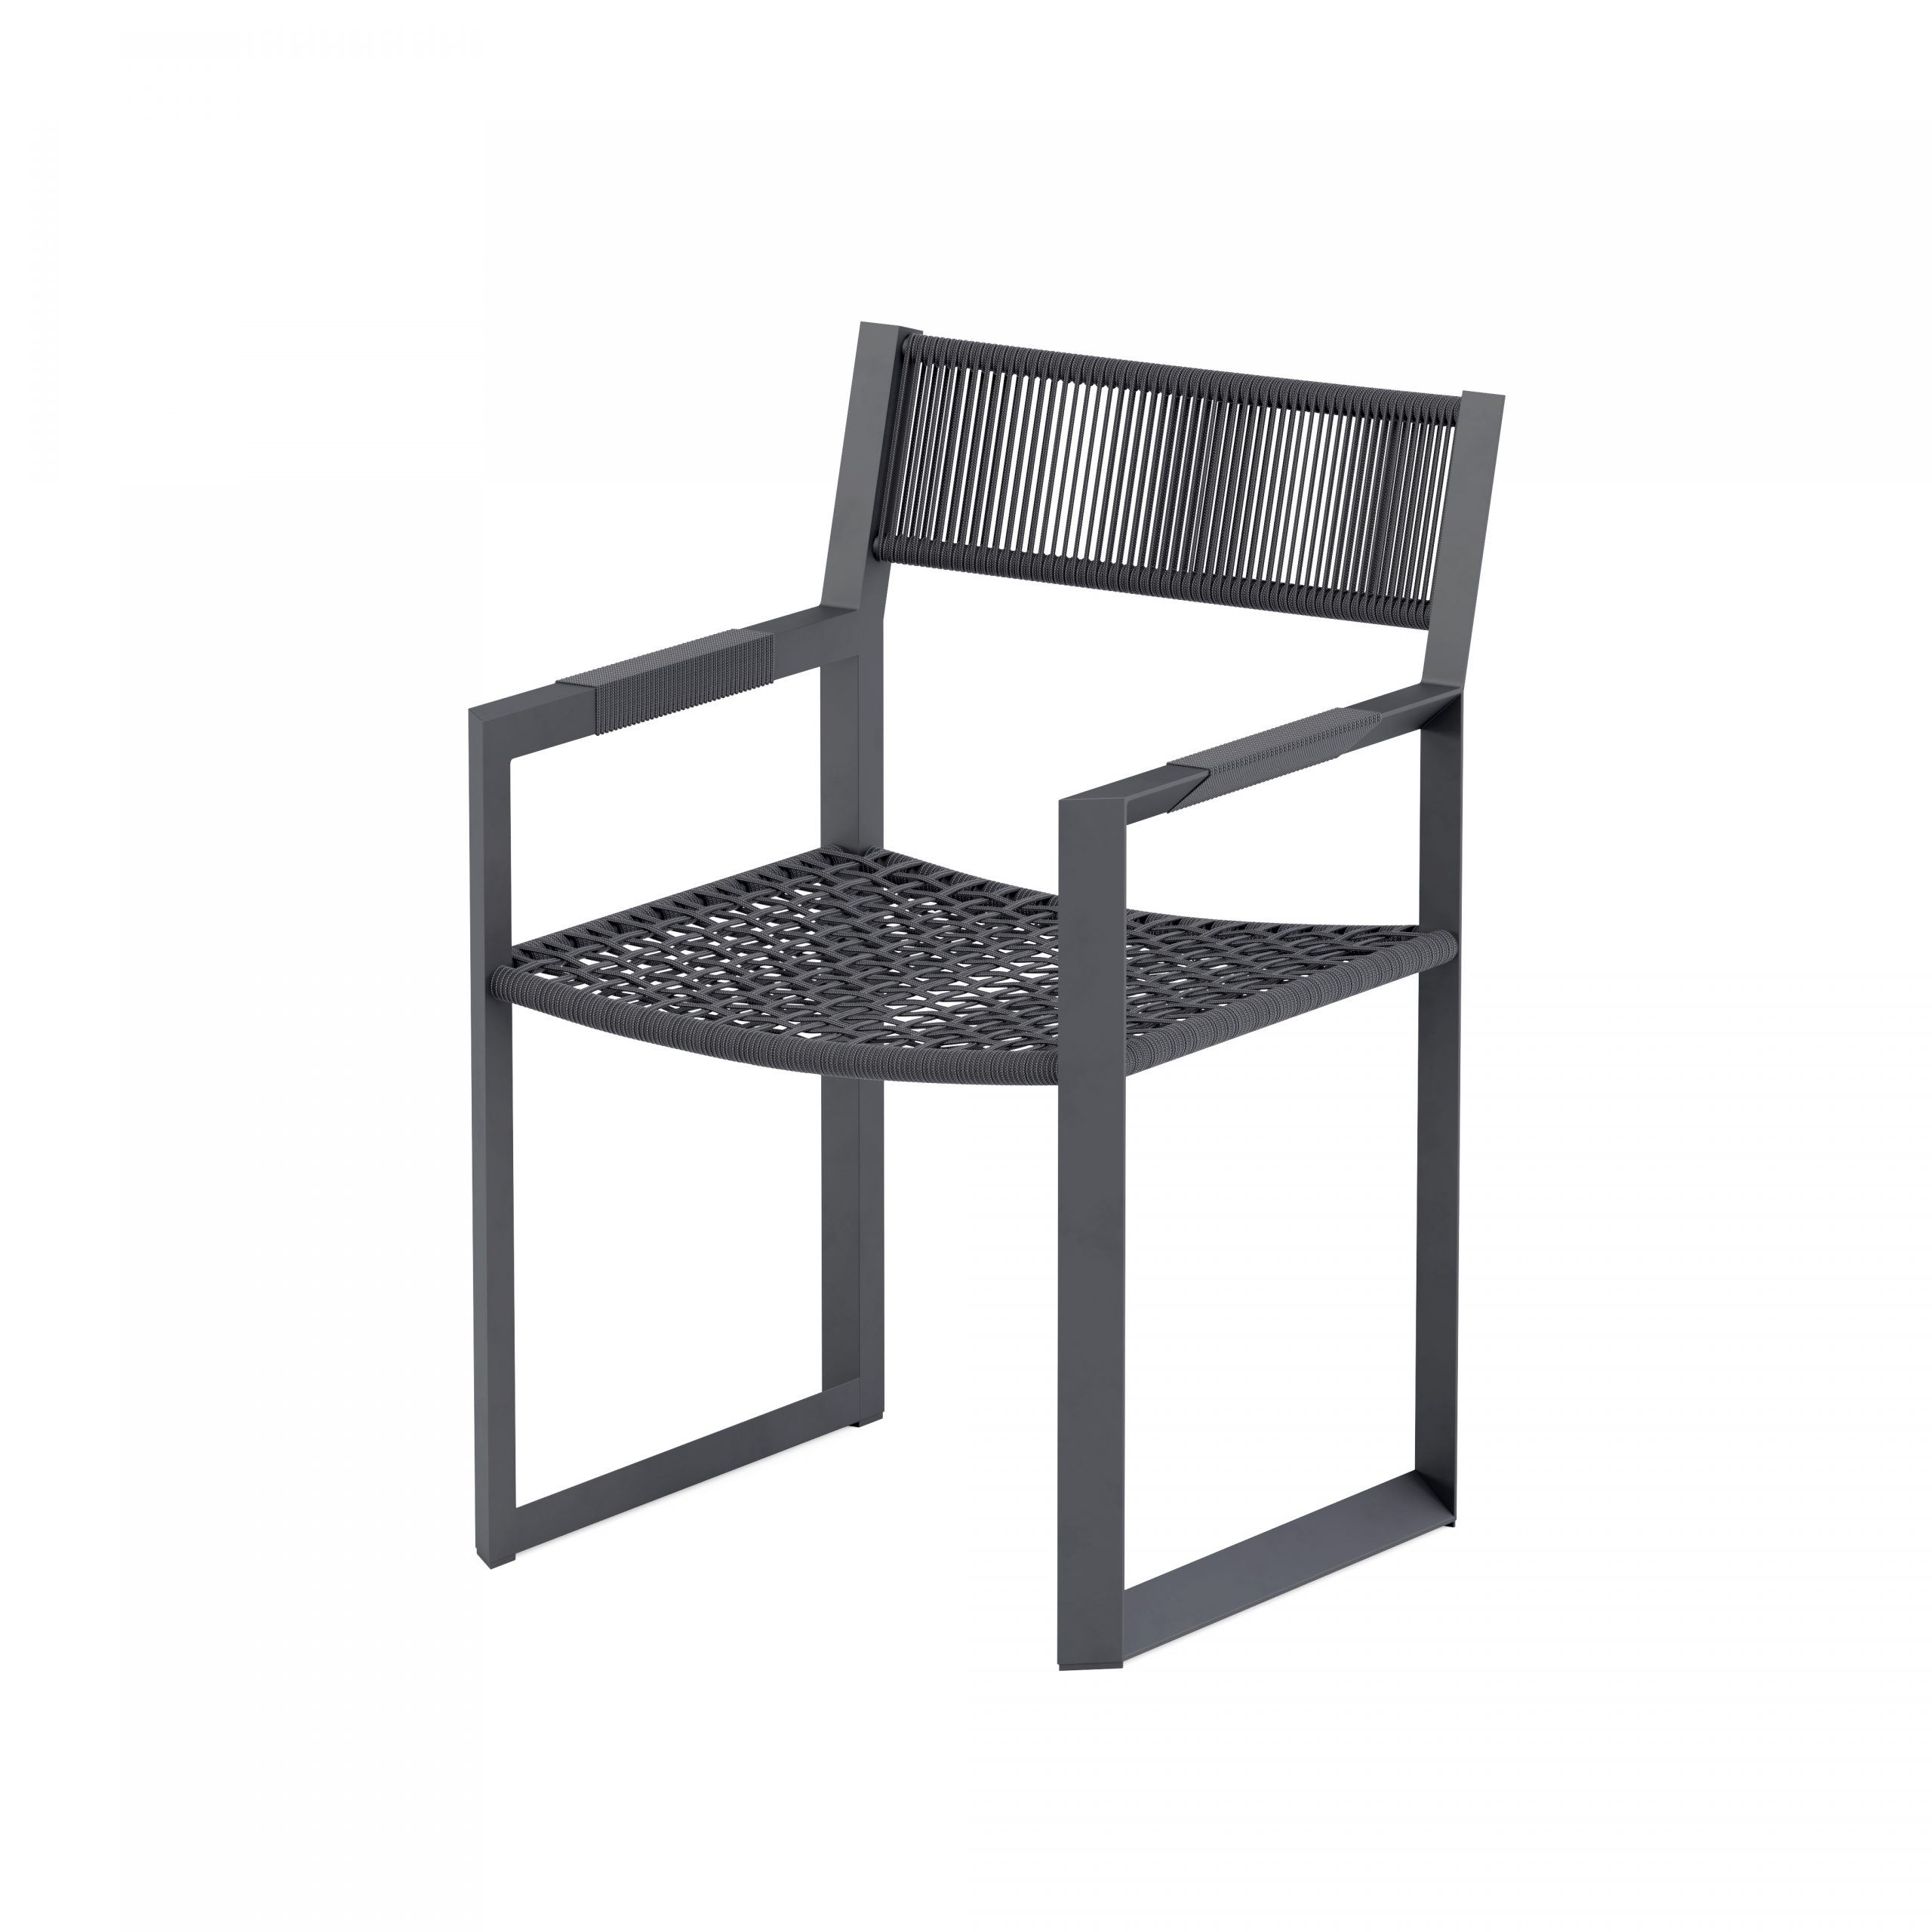 Outdoor chair by Jardinico